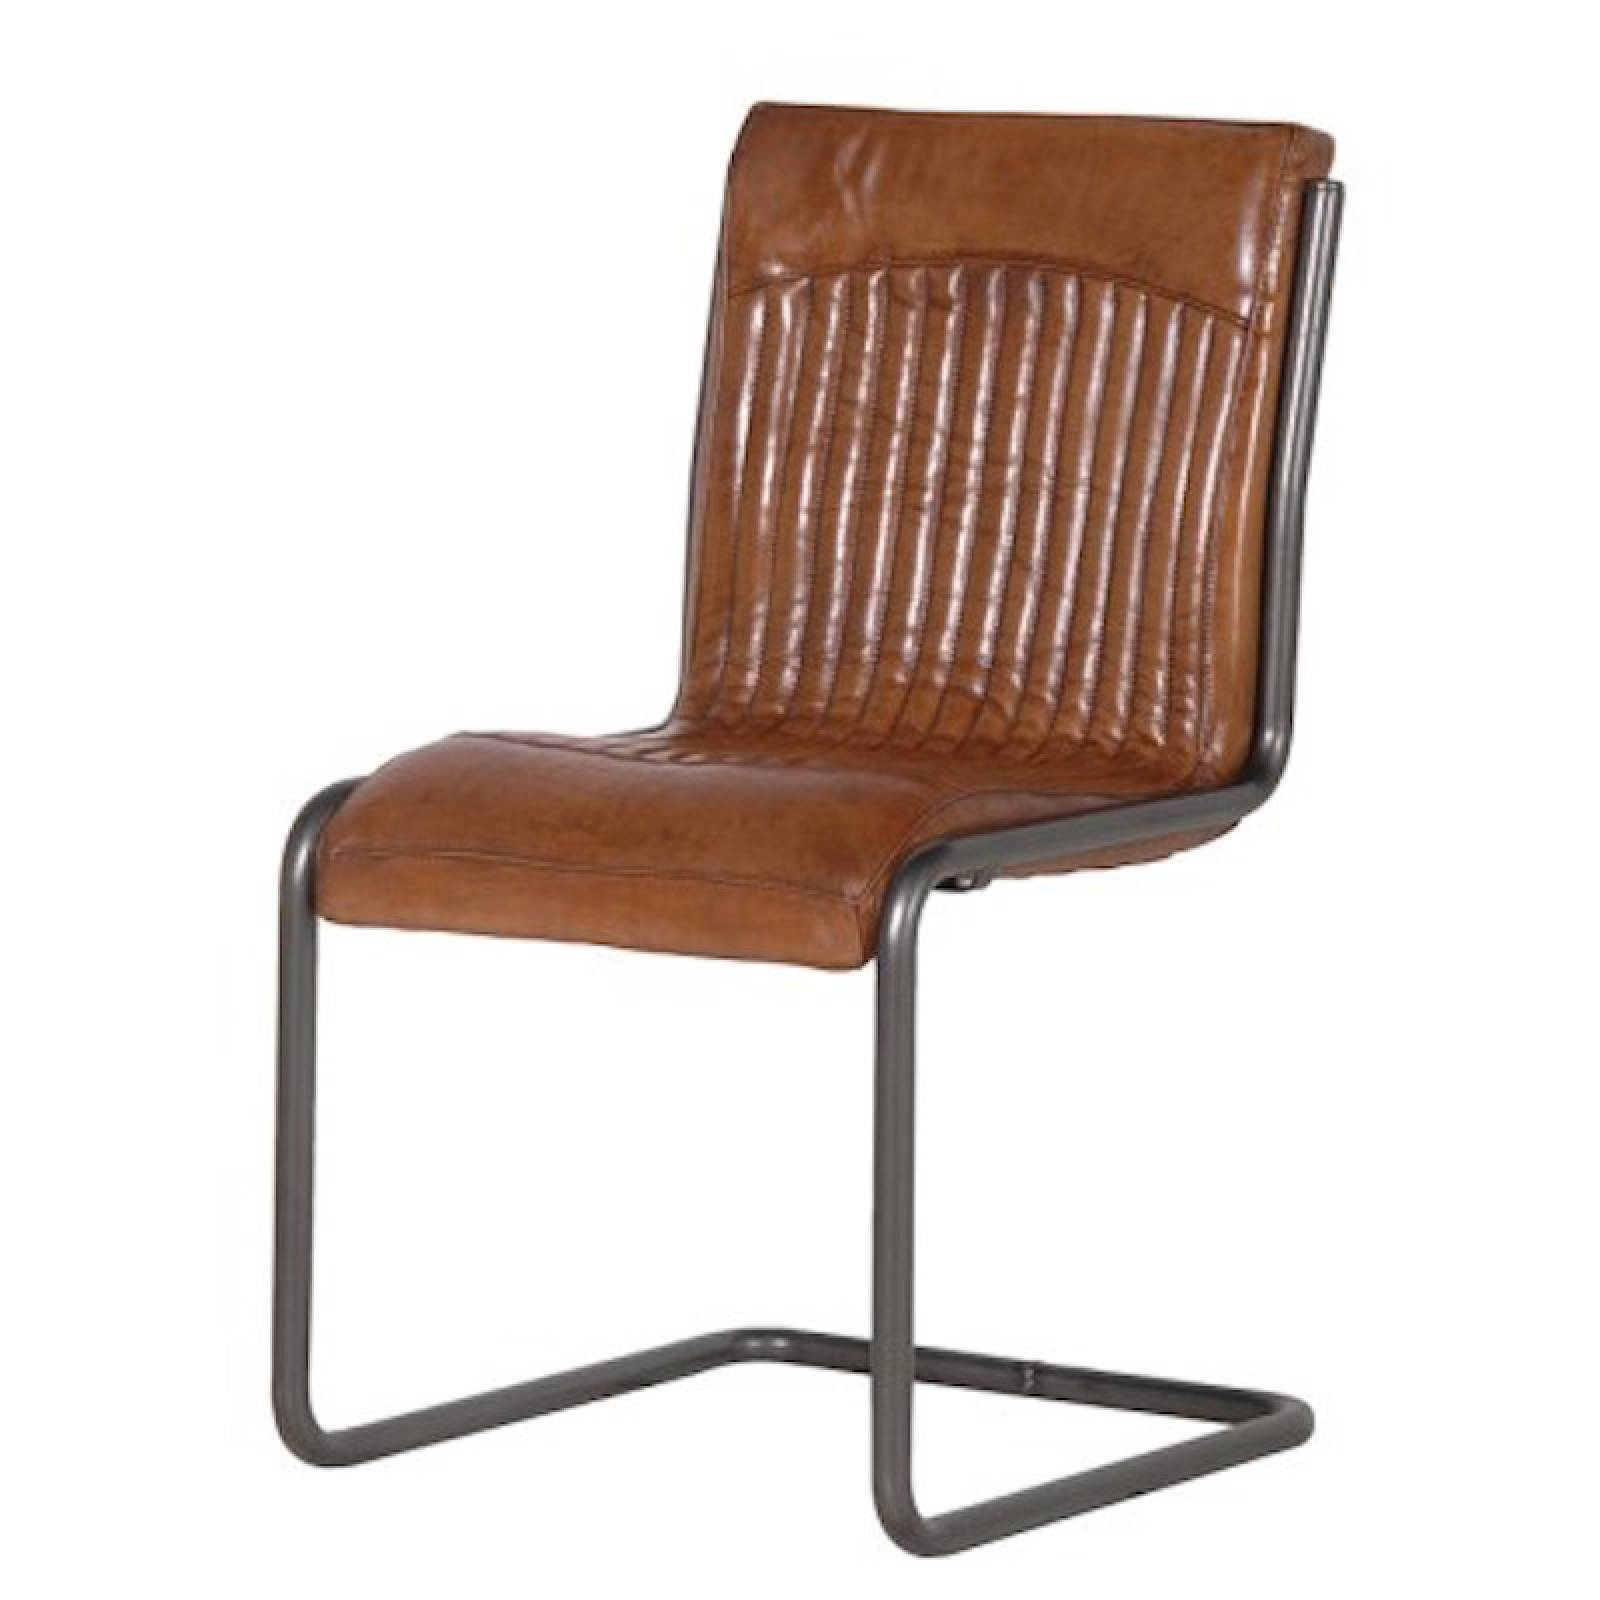 Bauhaus Cantilever Leather & Steel Chair